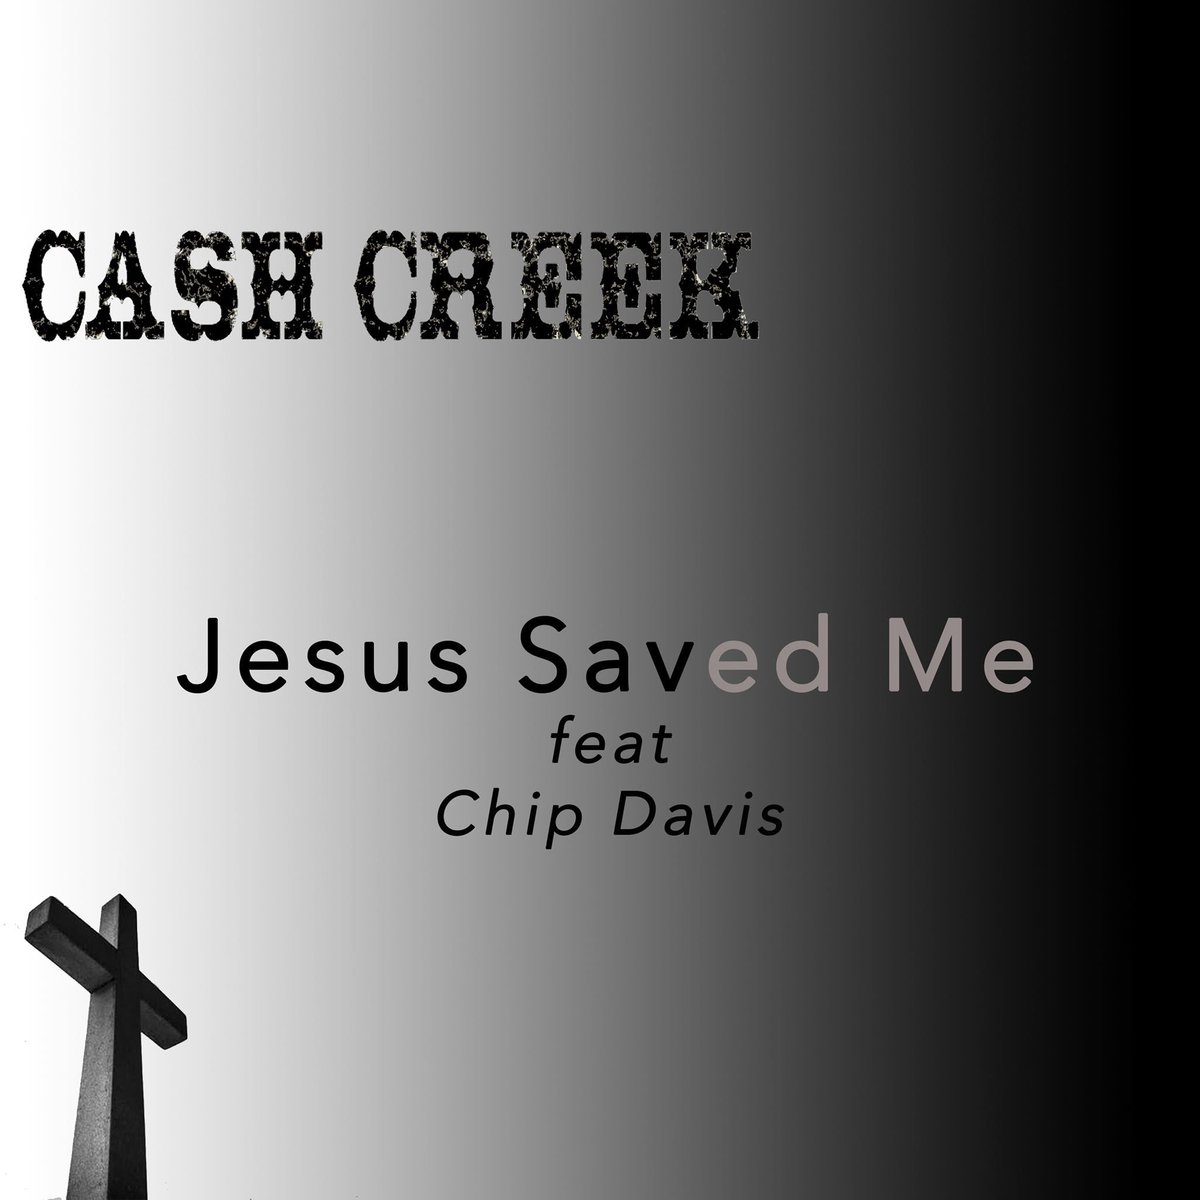 """New inspirational """"music with a message"""" on the way from @CashCreek featuring Chip Davis. Stay tuned!"""